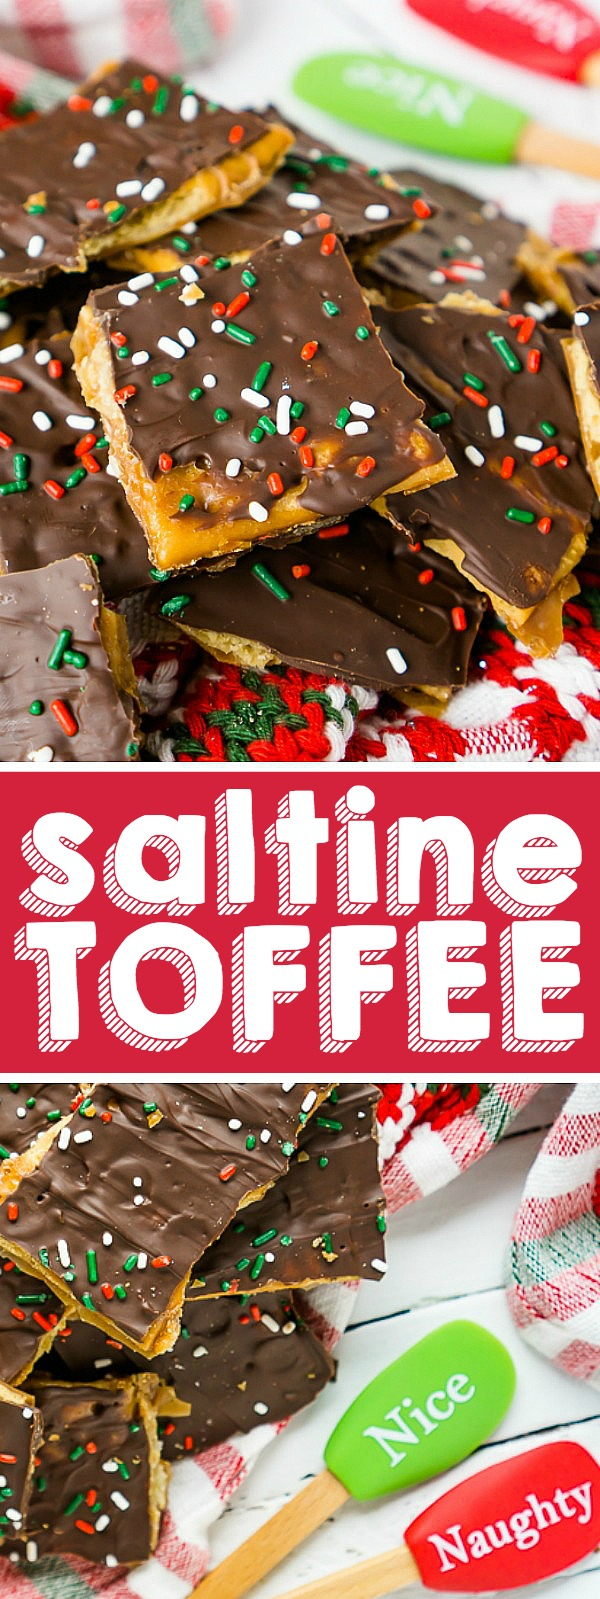 Saltine Toffee is a quick and easy Christmas Candy that is an addicting sweet and salty holiday treat! Known by many as Christmas Crack, this is a candy recipe you will definitely want to add to your holiday menu!| THE LOVE NERDS #christmascandy #christmasdessert #candyrecipe #holidayrecipe